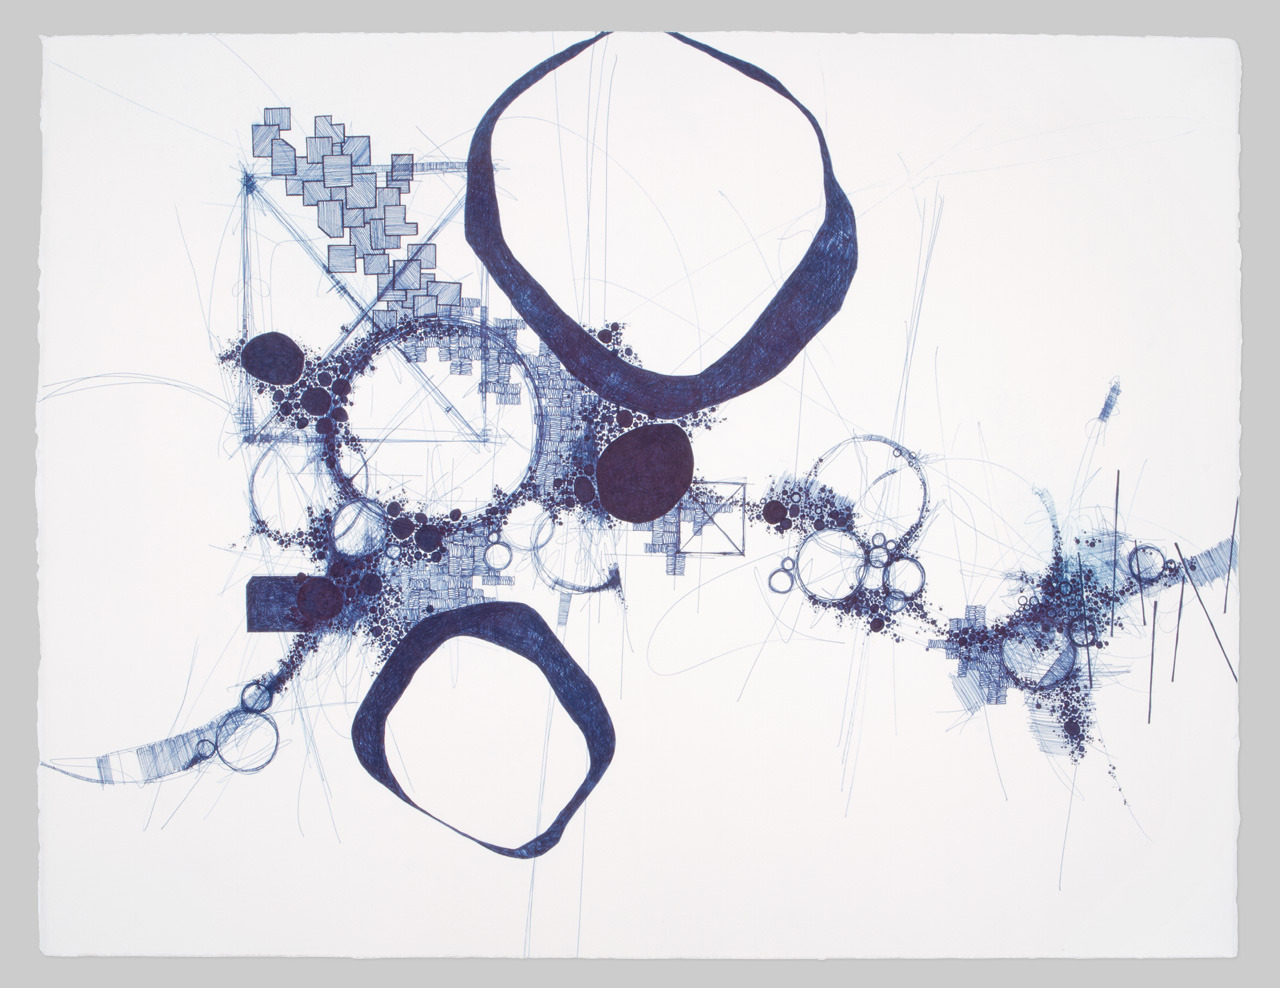 Asvirus 27  Derek Lerner - 2011 Ink on paper 20 x 26 in